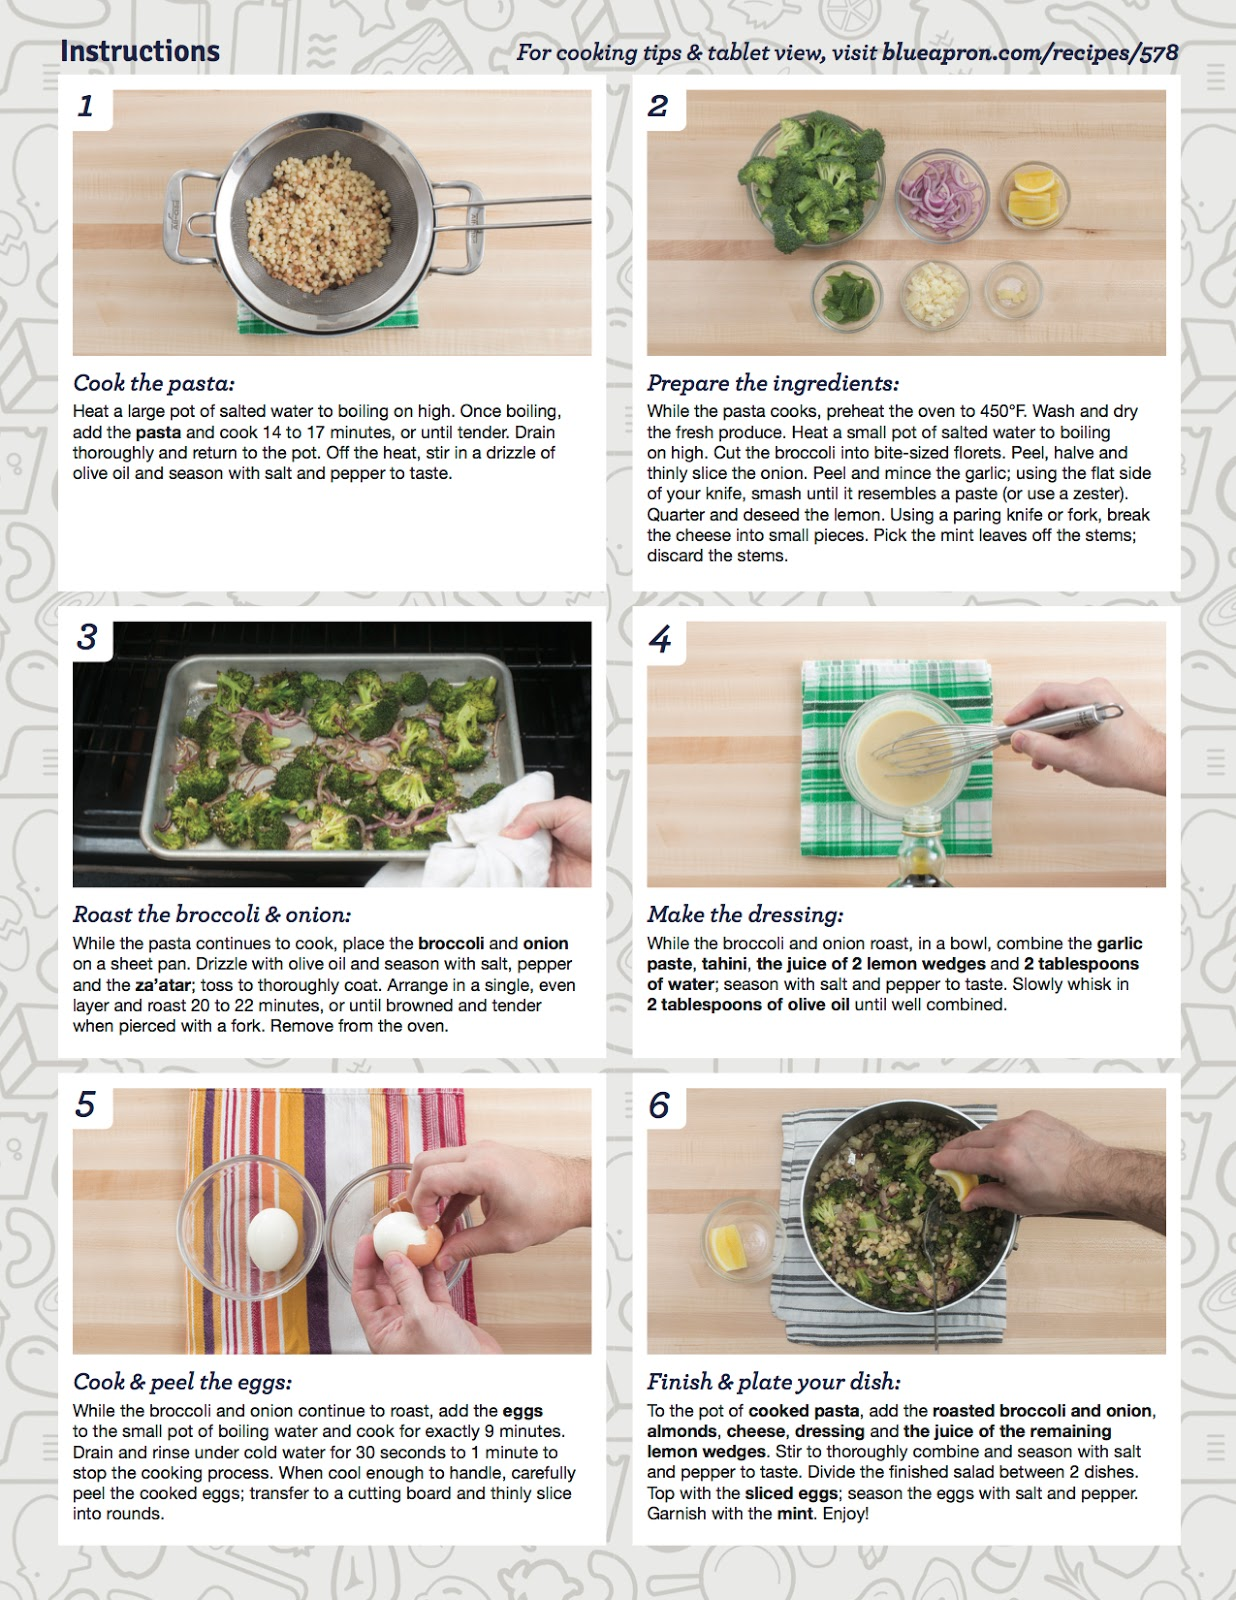 Blue apron broccoli - I Must Warn You That If You Get Any Meals From Blue Apron Be Careful About The Onions They Called For A Whole Onion In Each Recipe But They Were So Strong